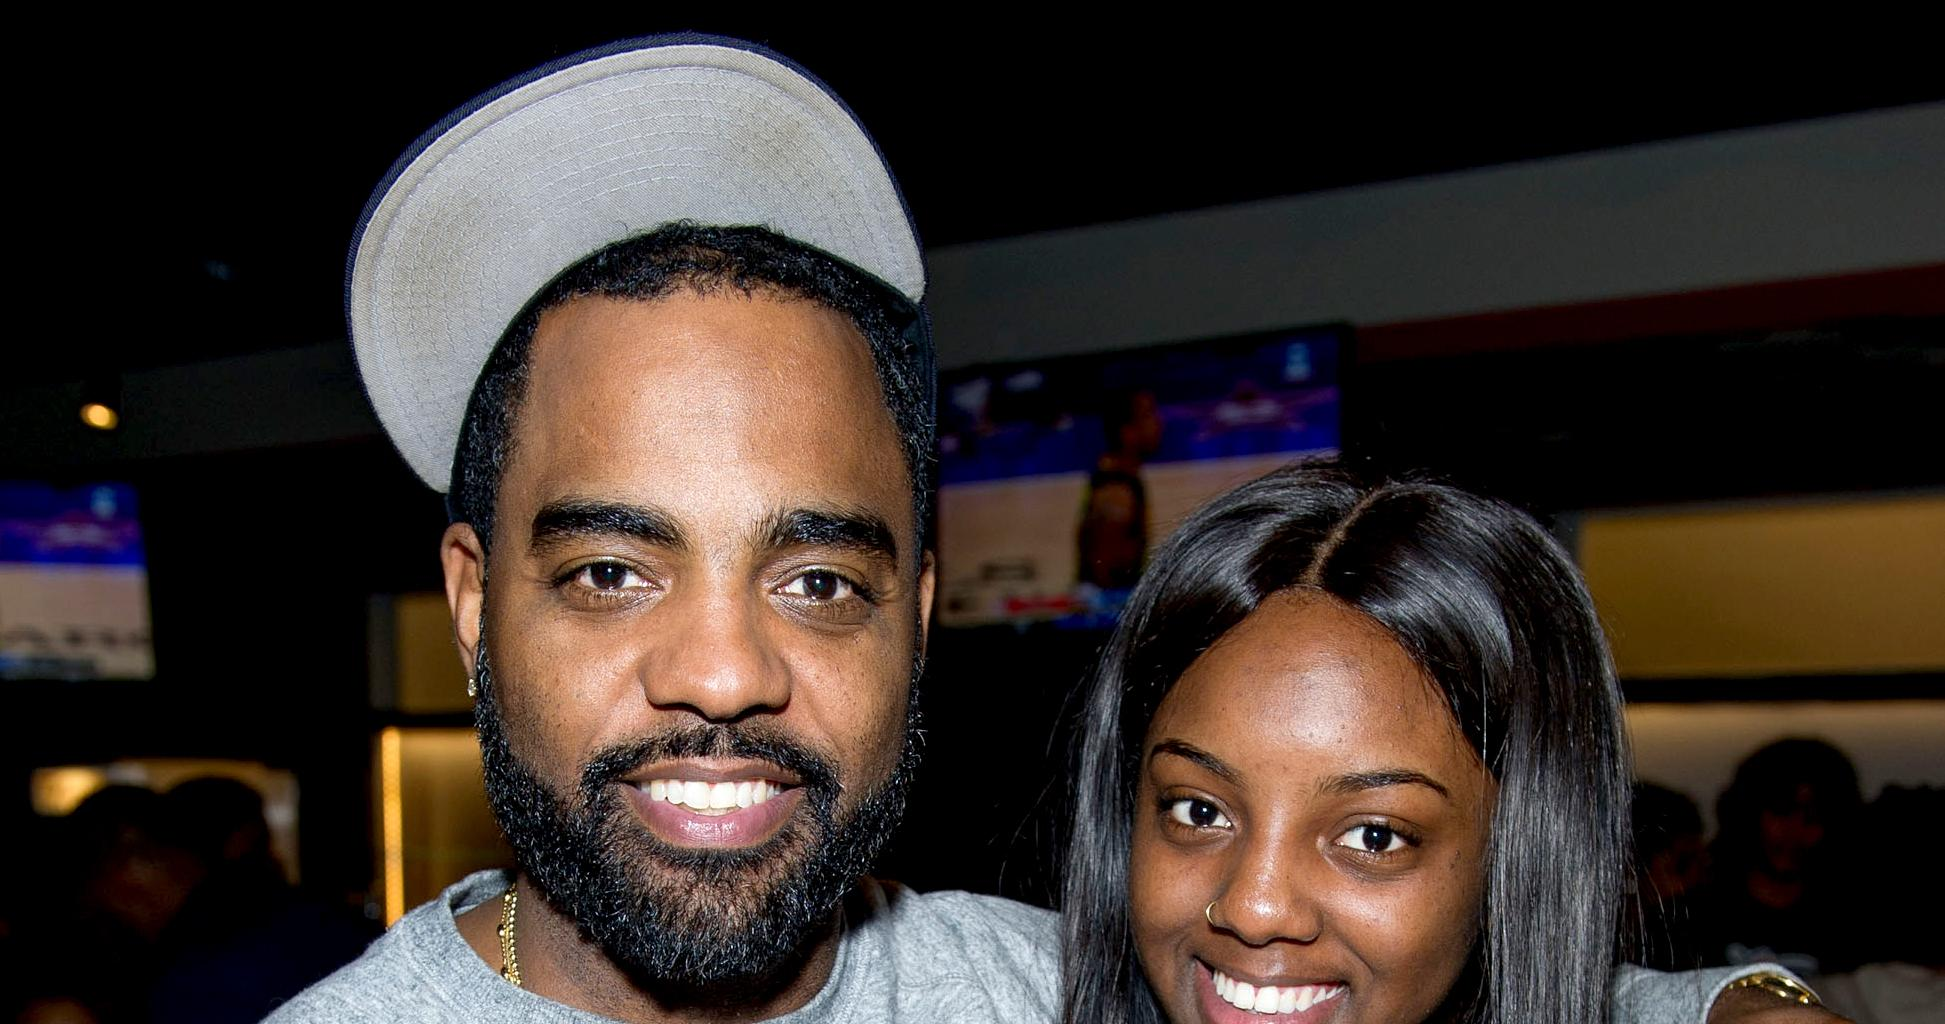 Kandi Burruss' Husband Todd Takes Daughter To Strip Club And People Are Outraged - Check Out His Defense!